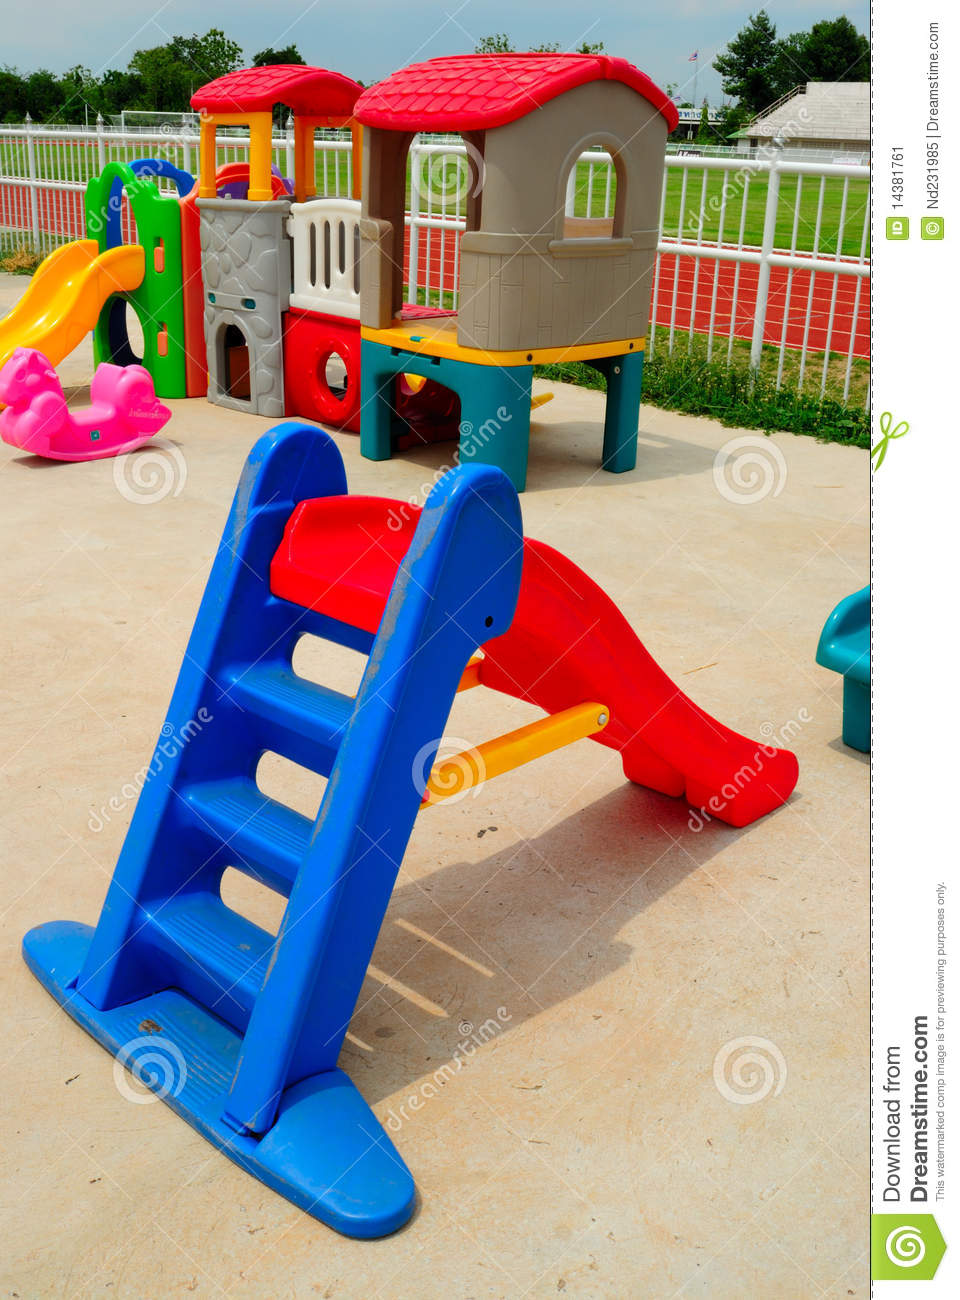 Unique Outdoor Toys For Toddlers : Outdoor toys for children stock image of